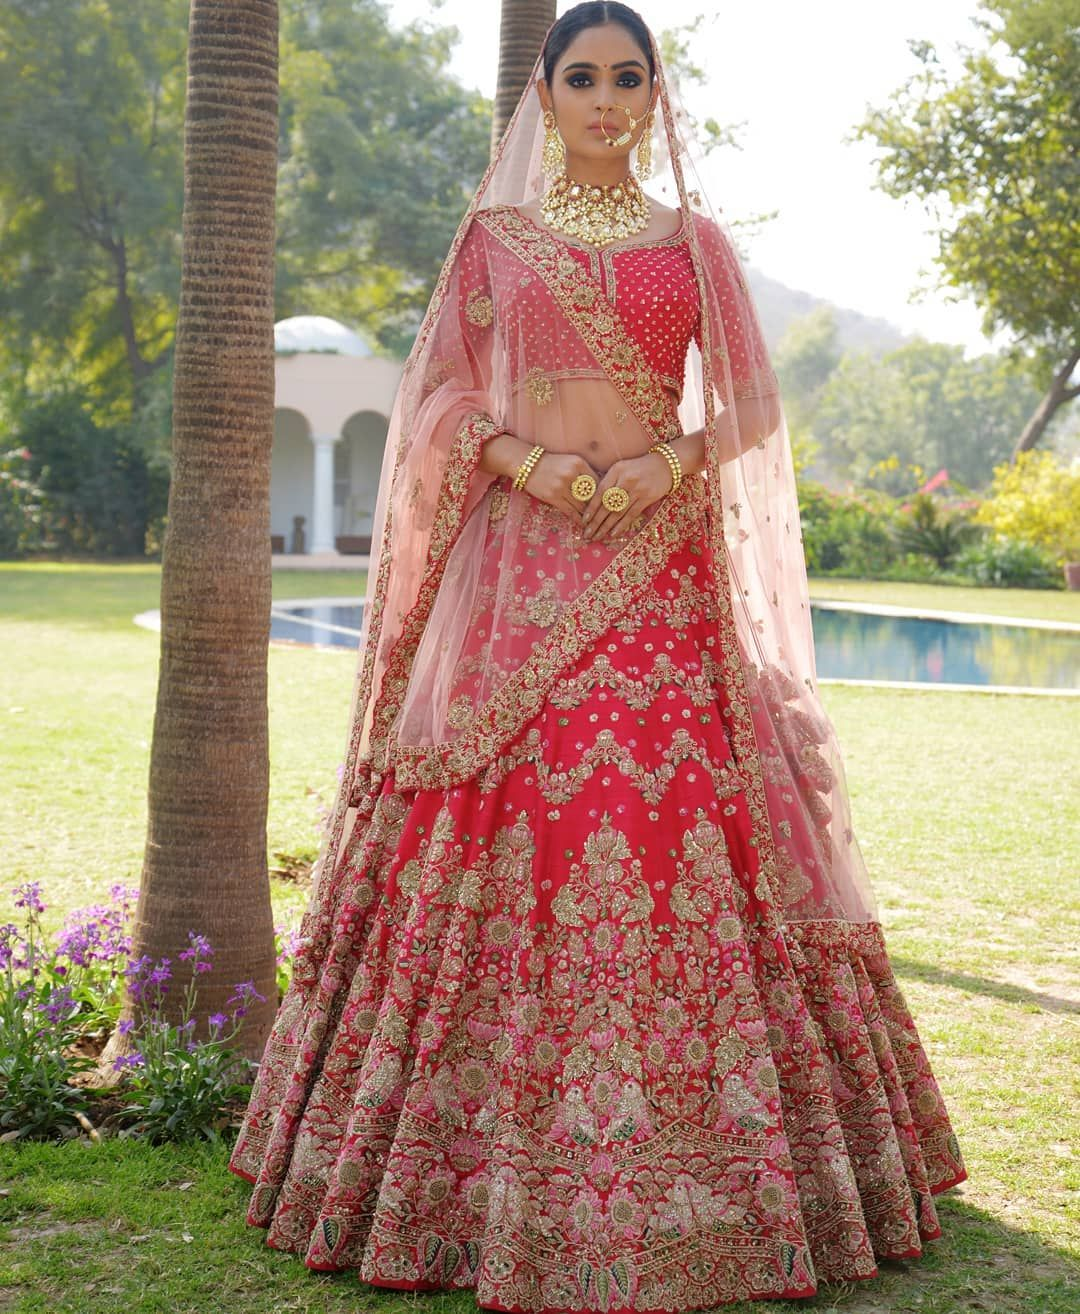 89a0401395 Image Red Wedding Designer Lehenna : Spurce your ethnic collection this  season with this lehenga choli .. Pair it up with heels or flats for an  elegant ...